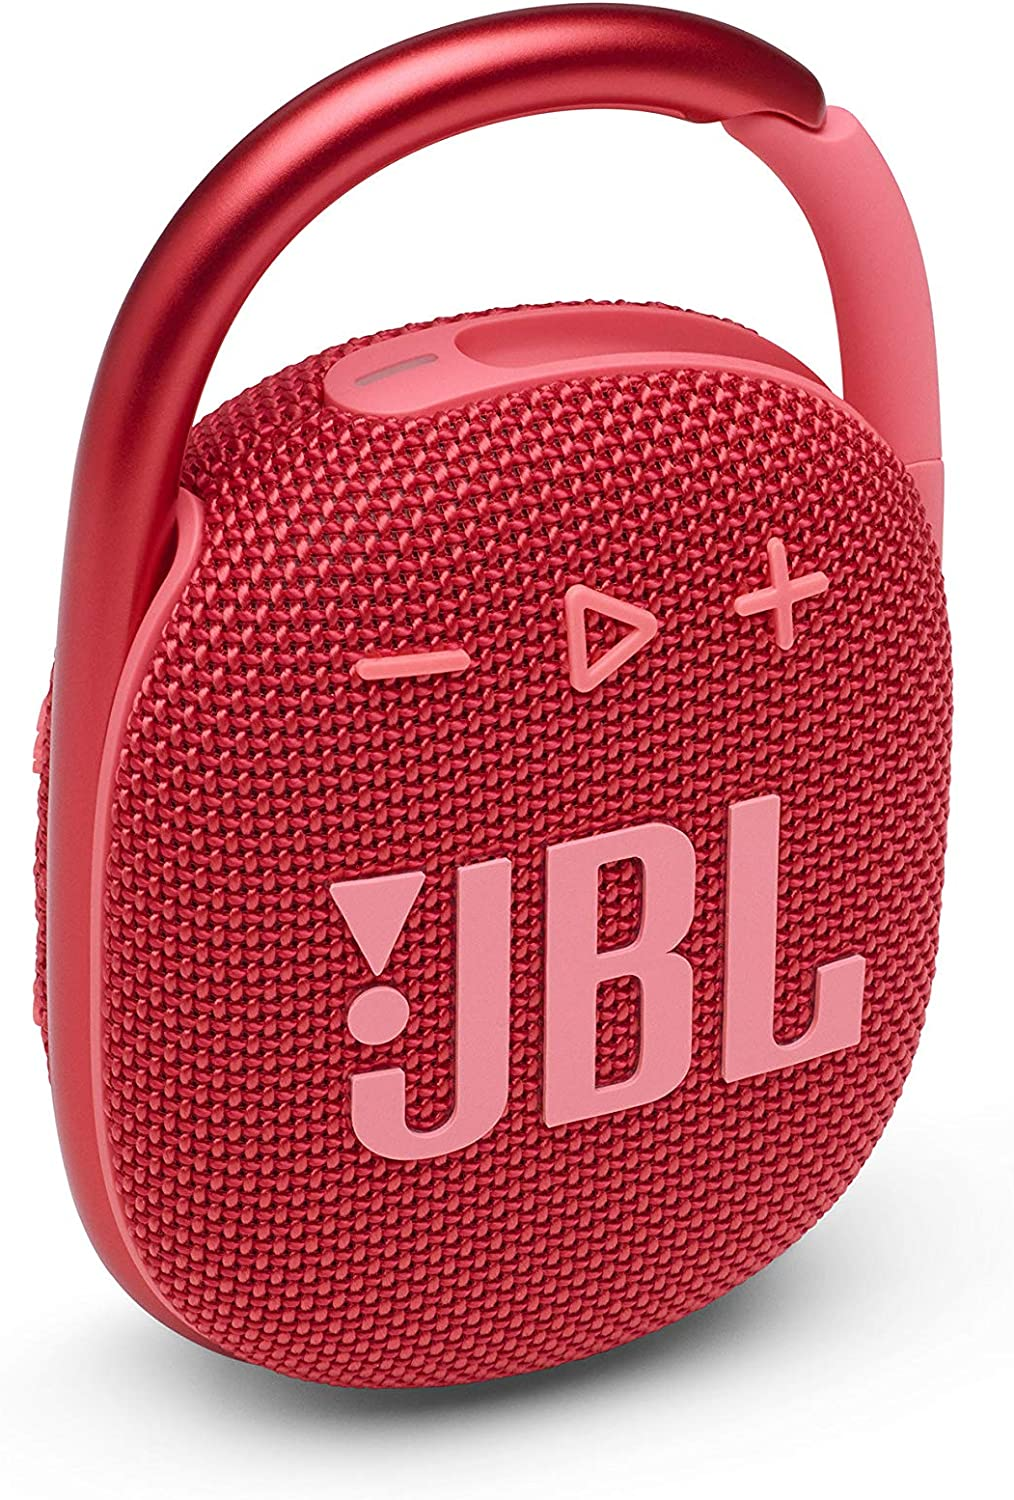 JBL Clip 4 - Portable Mini Bluetooth Speaker, Big Audio and Punchy bass, Integrated Carabiner, IP67 Waterproof and dustproof, 10 Hours of Playtime, Speaker for Home, Outdoor and Travel - (Blue): Electronics